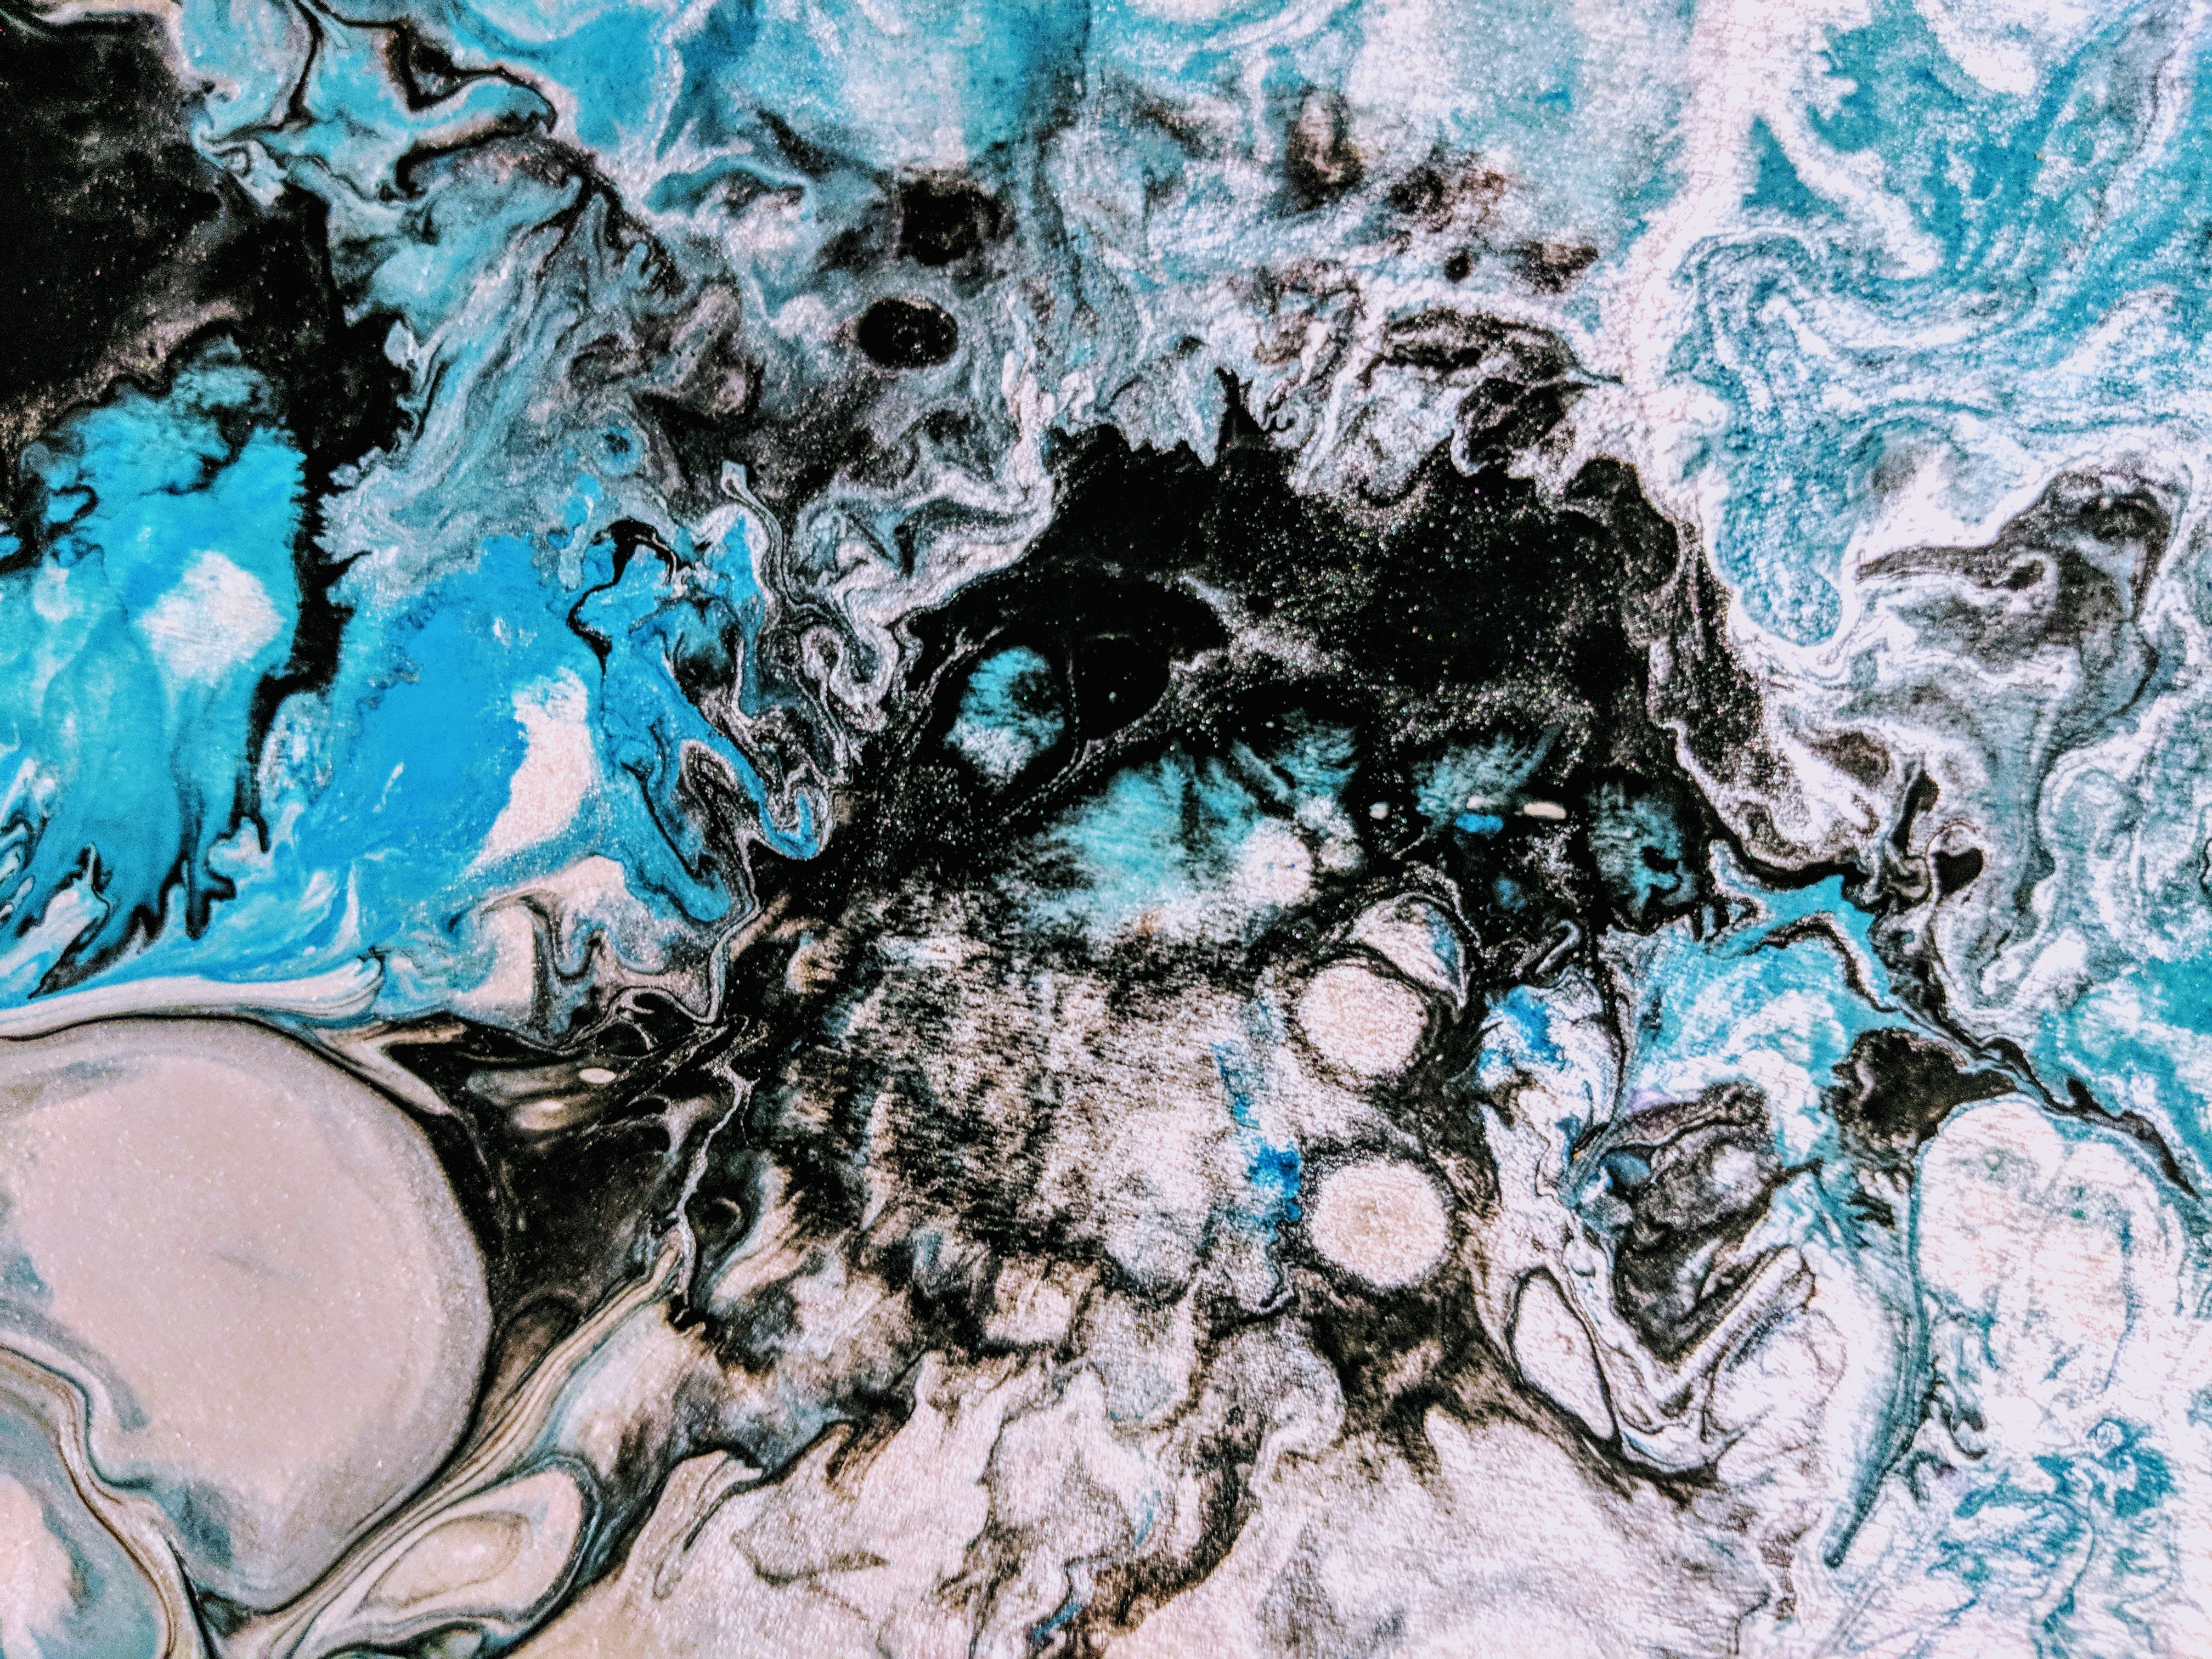 Free stock photo of painting, abstract, black, turquoise